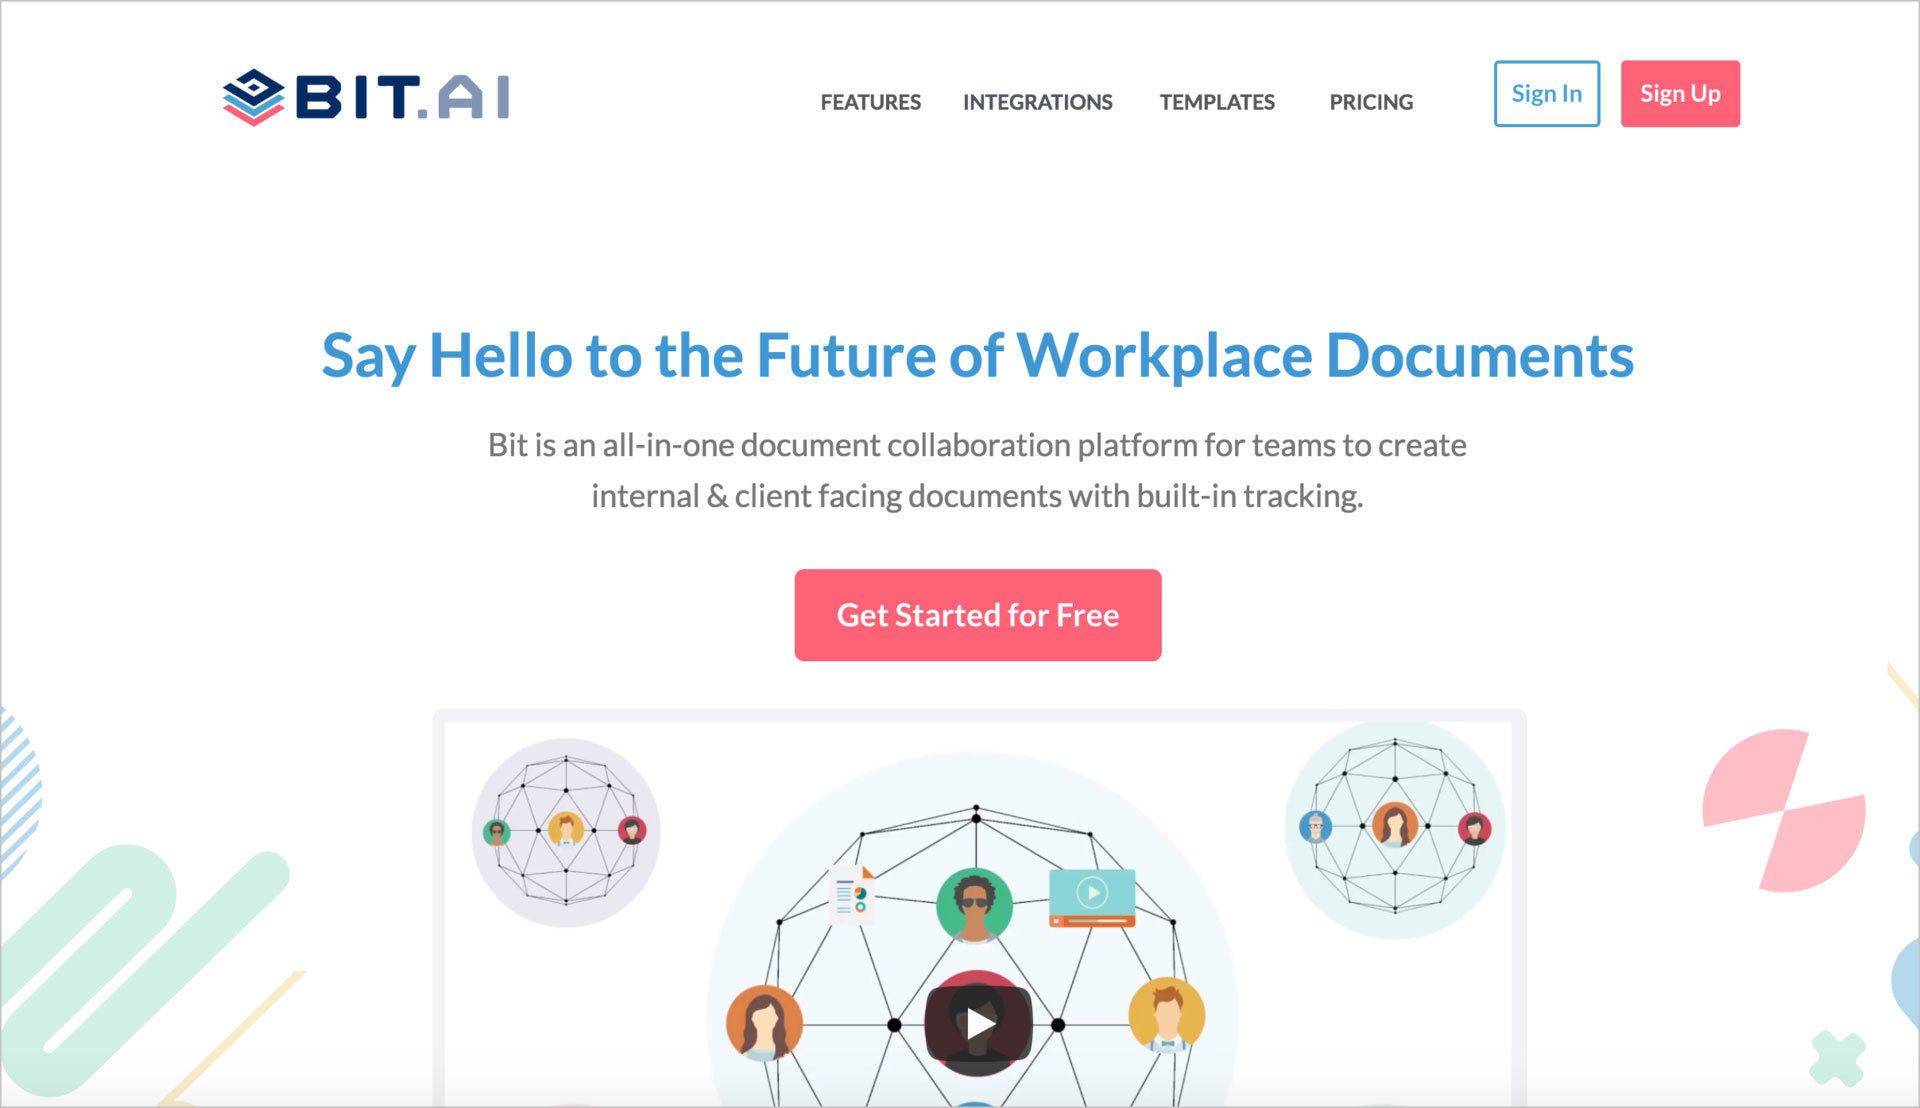 Bit.ai: Document tracking system